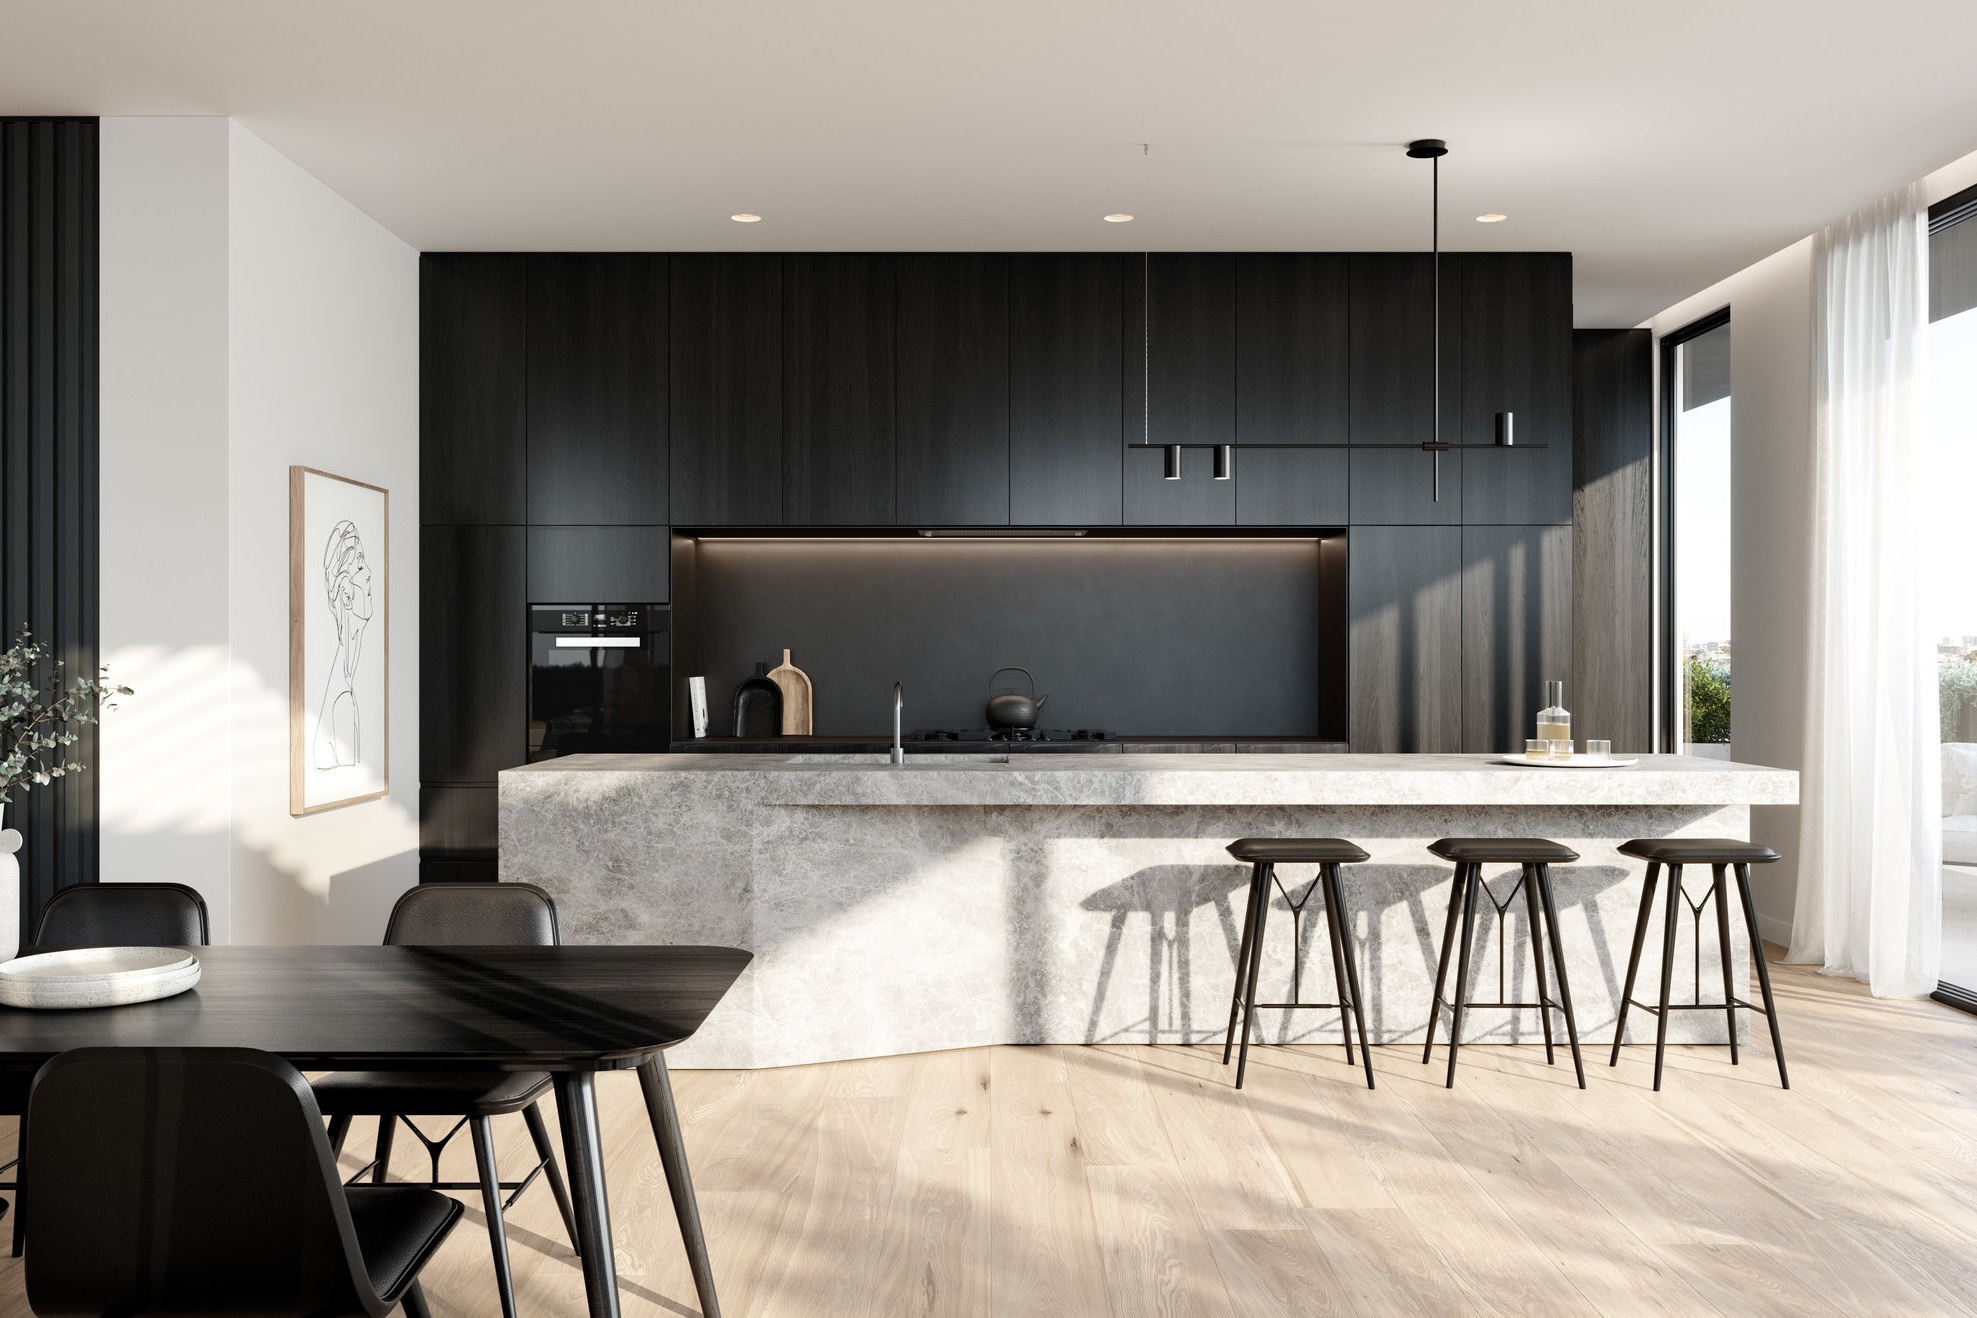 S04_16-18_Chambers_South_Yarra_INT_Penthouse_Kitchen_Final.jpg